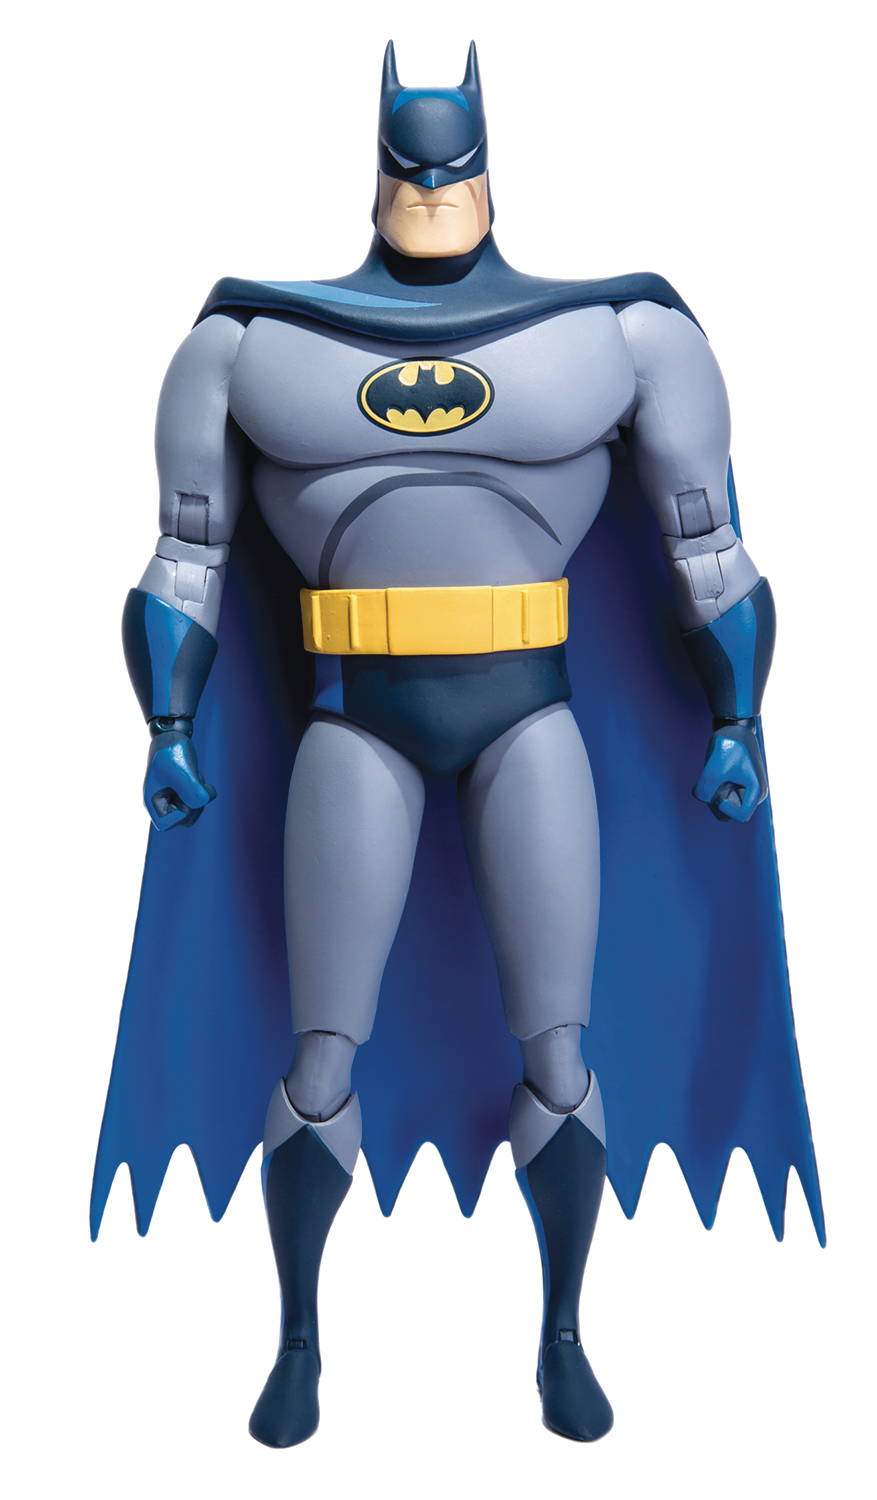 BATMAN ANIMATED BATMAN 1/6 SCALE COLLECTIBLE FIGURE  (C